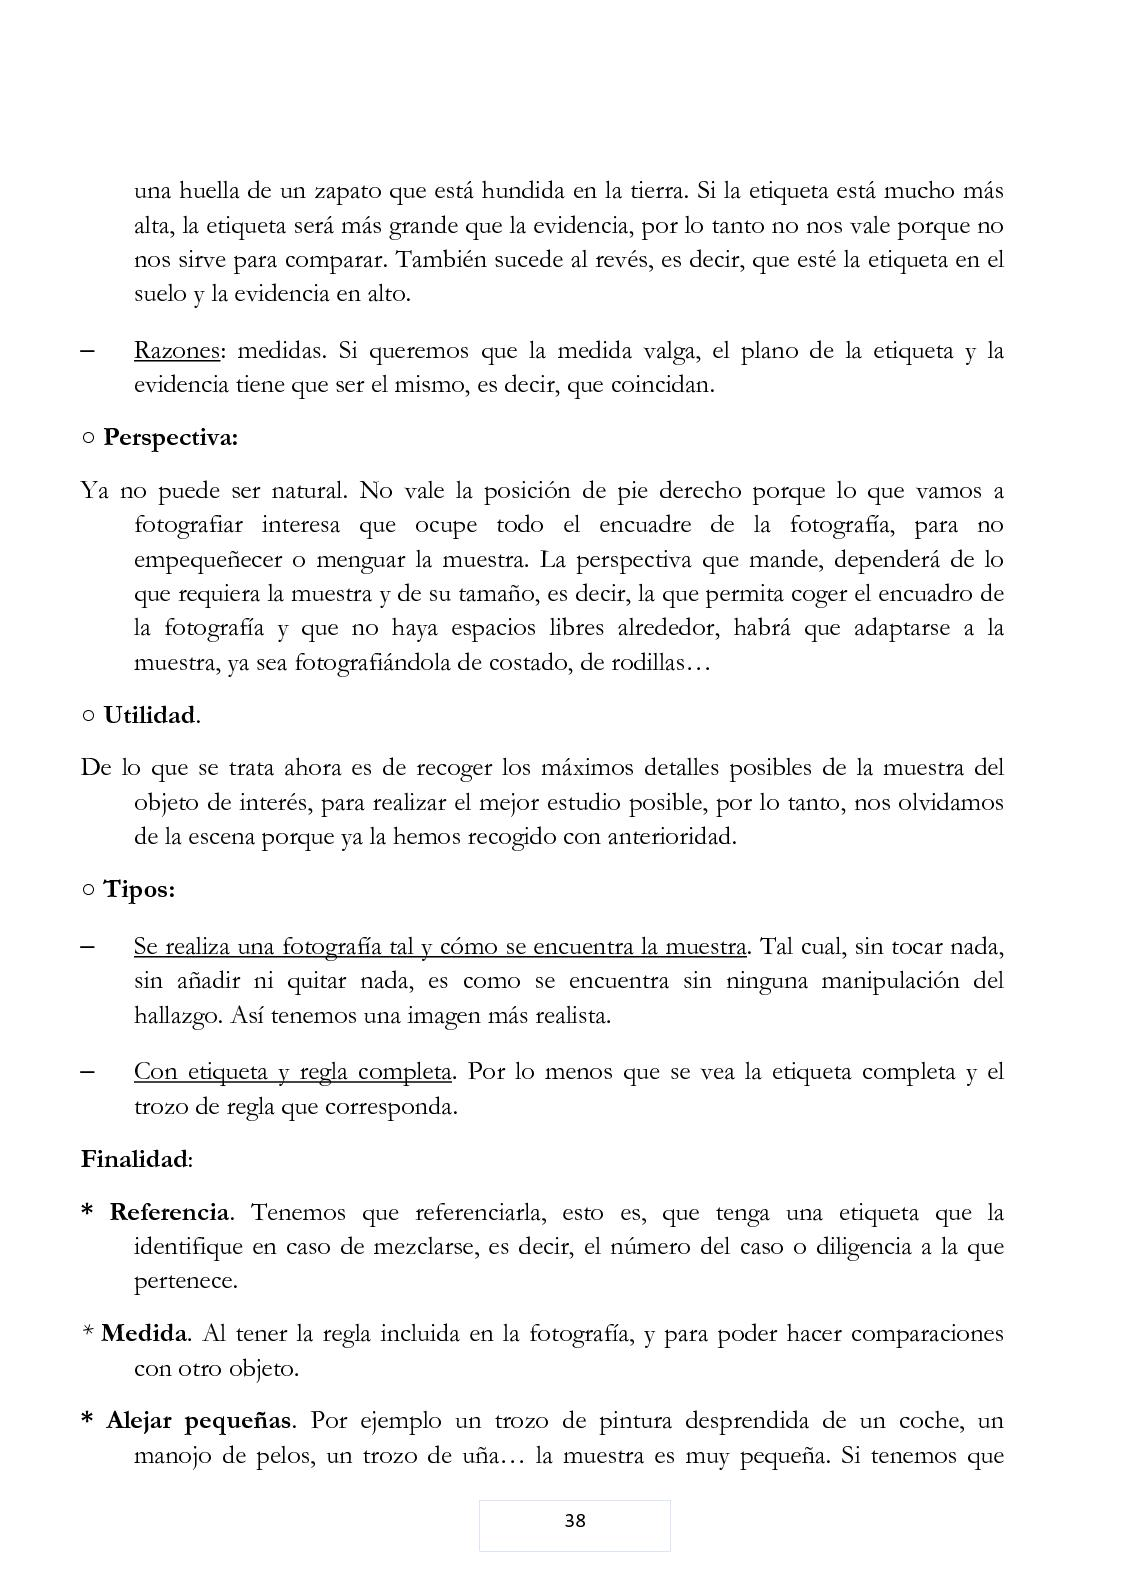 Page 38